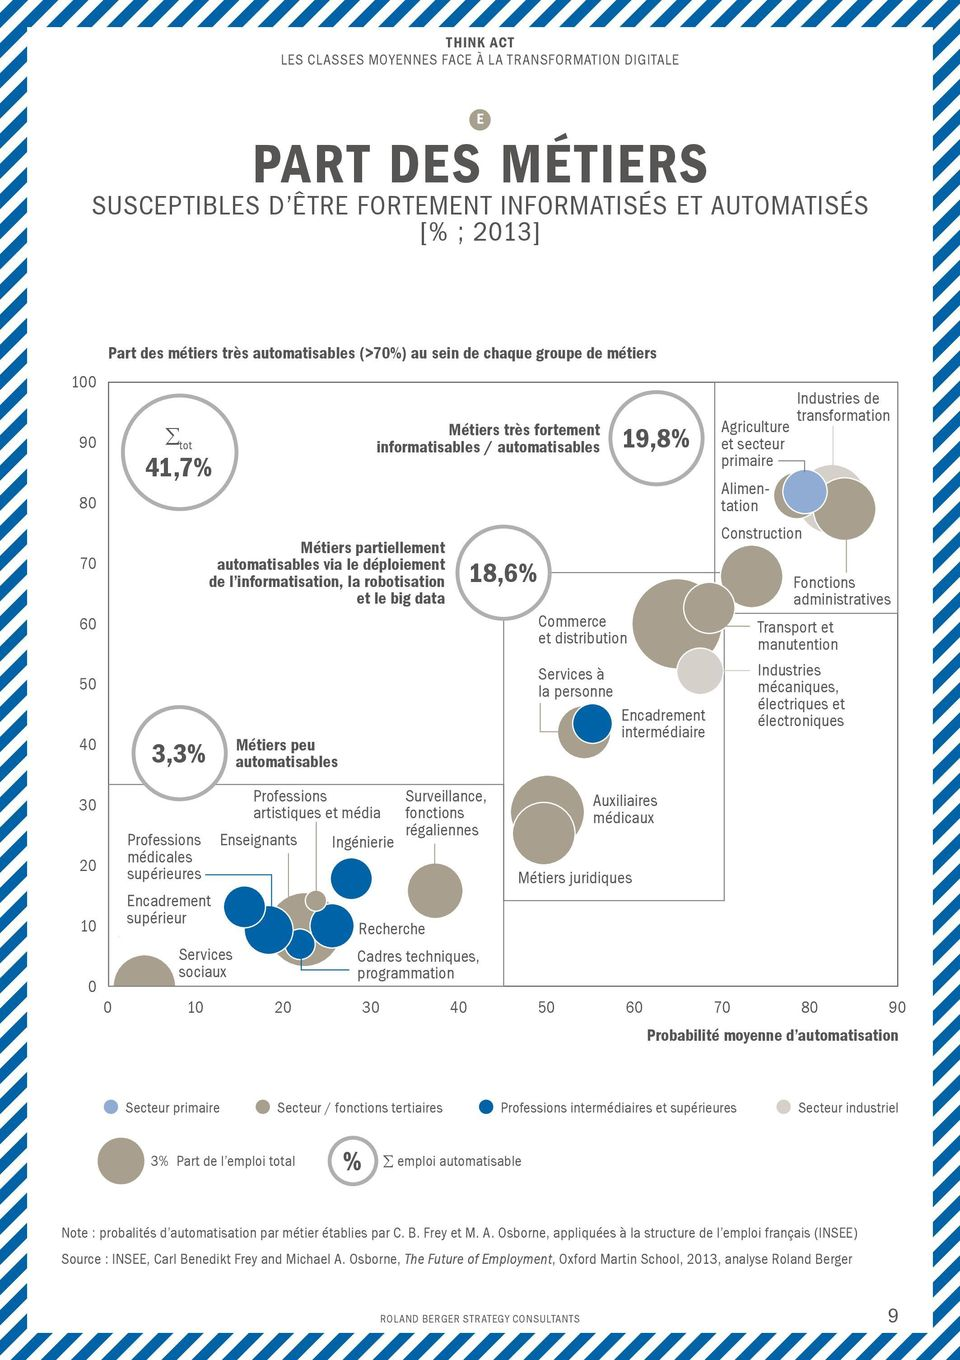 18,6% Commerce et distribution 19,8% Services à la personne Encadrement intermédiaire Industries de transformation Agriculture et secteur primaire Alimentation Construction Fonctions administratives